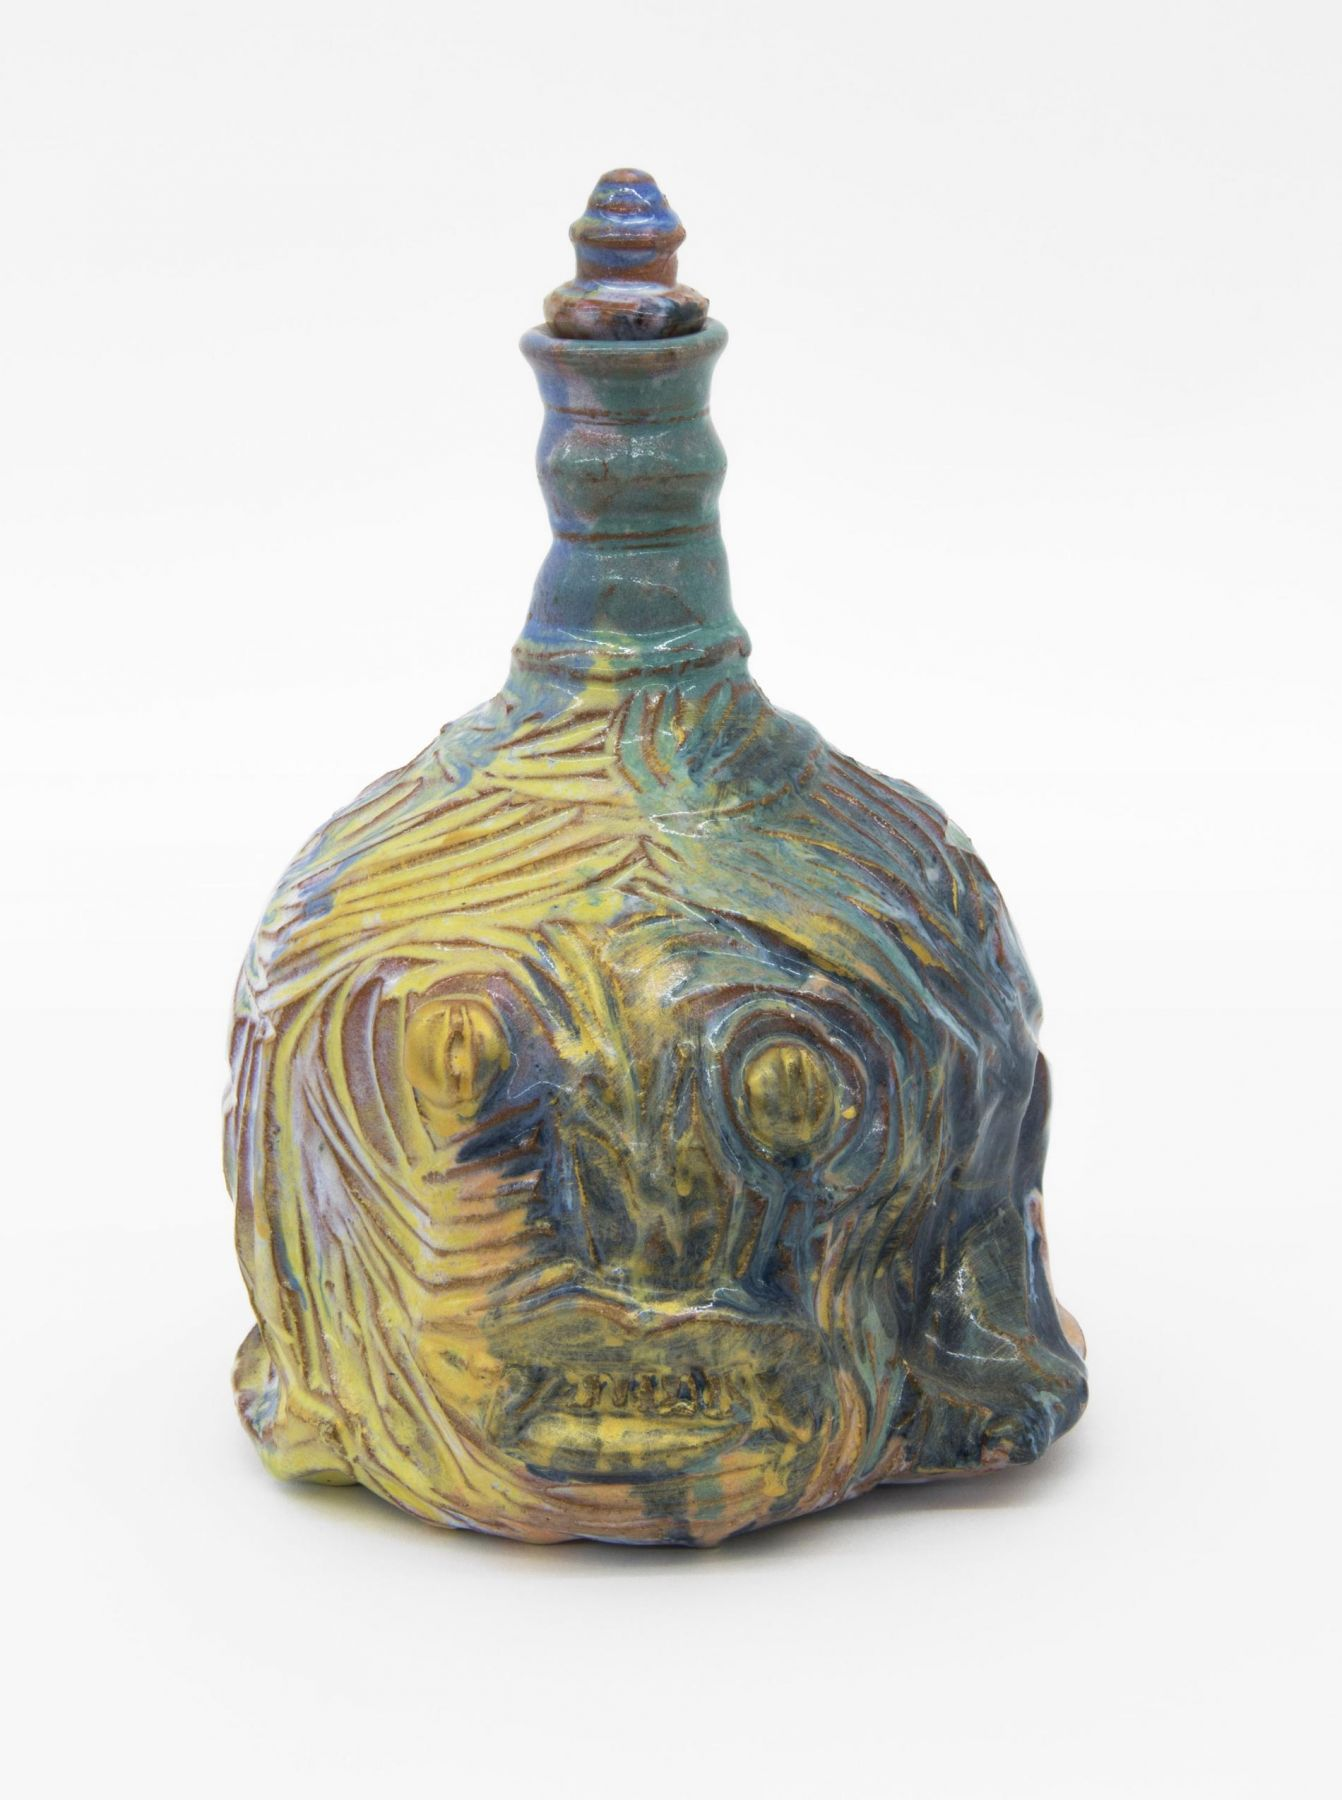 , Golden Guardian and Girl, 2009, Glazed earthenware, 9 1/4 x 6 x 6 in. including lid